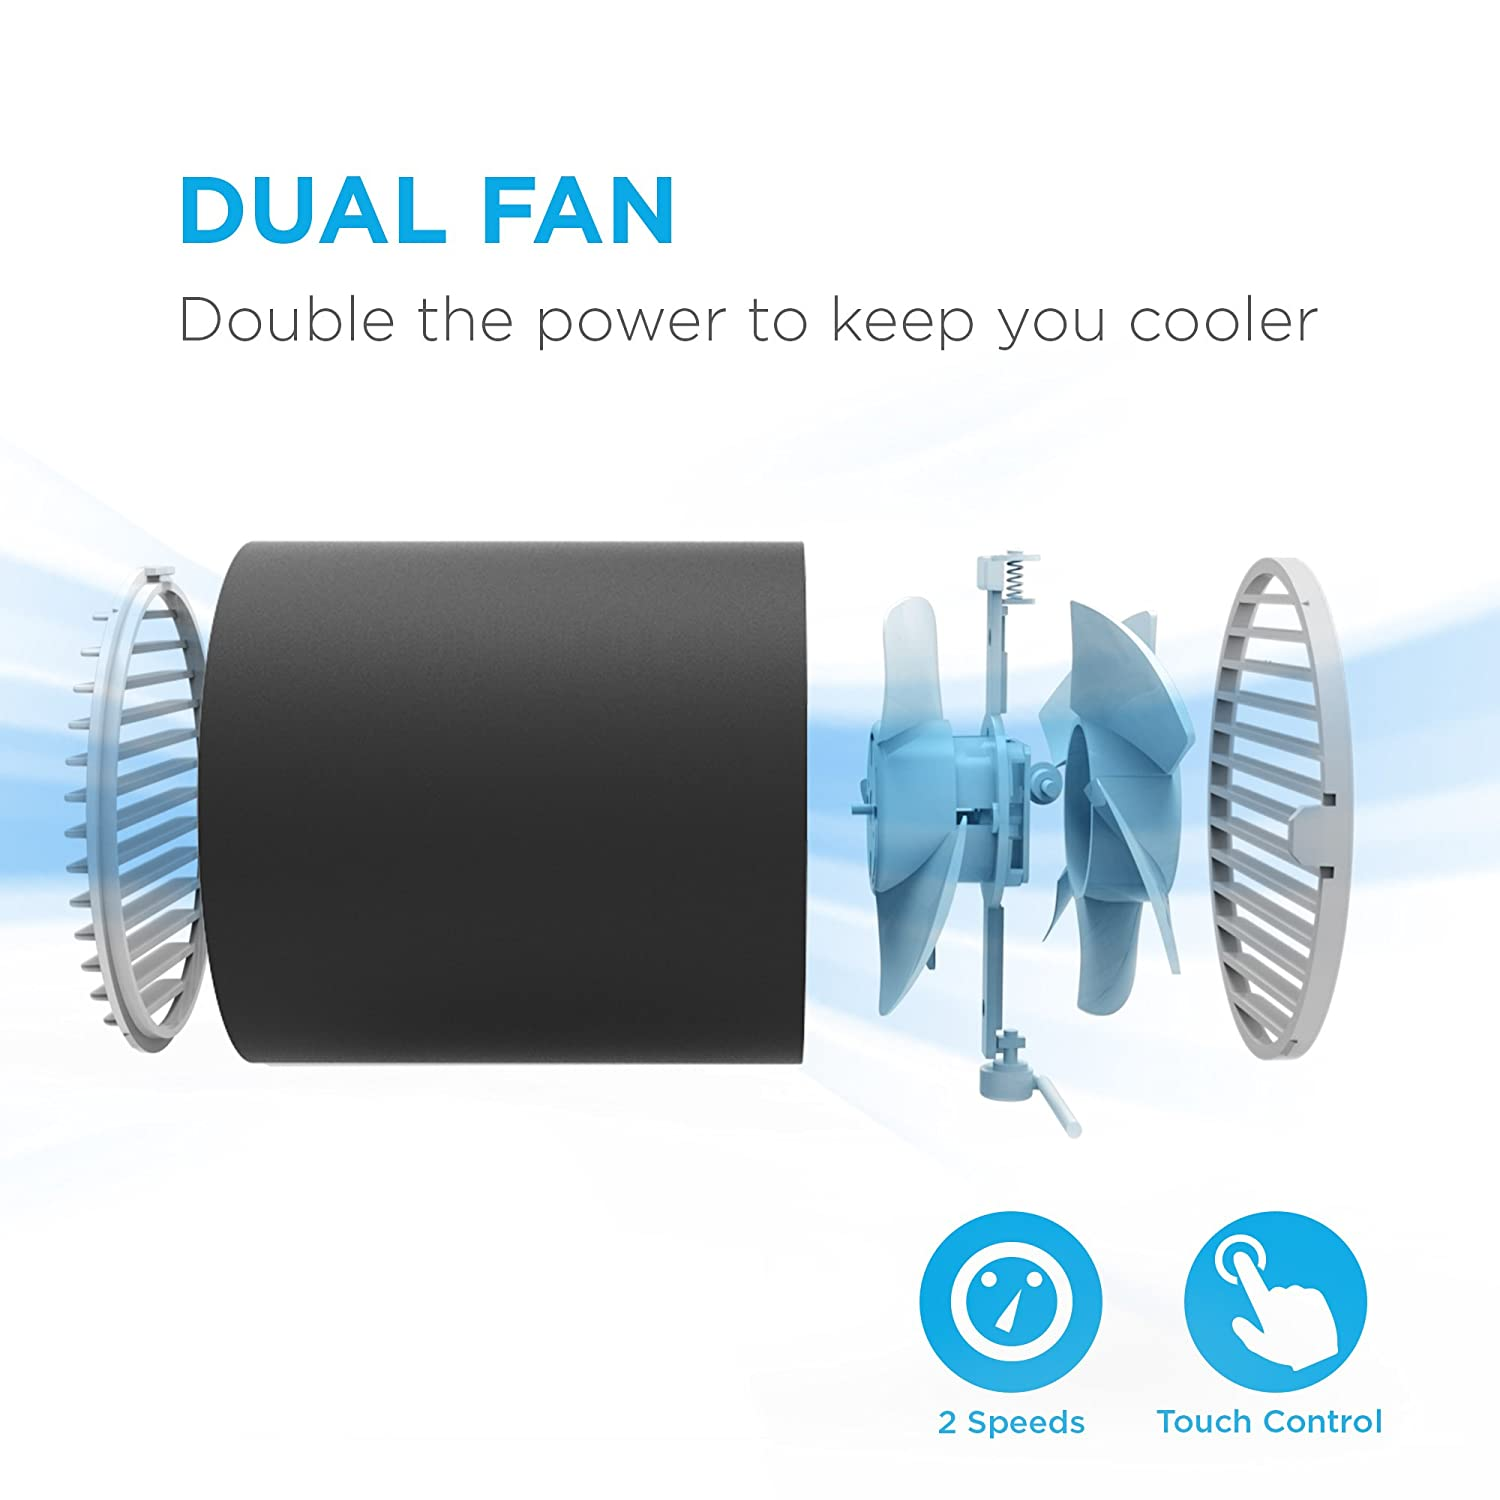 Fancii Small Personal Desk Usb Fan Portable Mini Table We Followed The Directions That Came With Controller And Twin Turbo Blades Whisper Quiet Cyclone Air Technology For Home Office